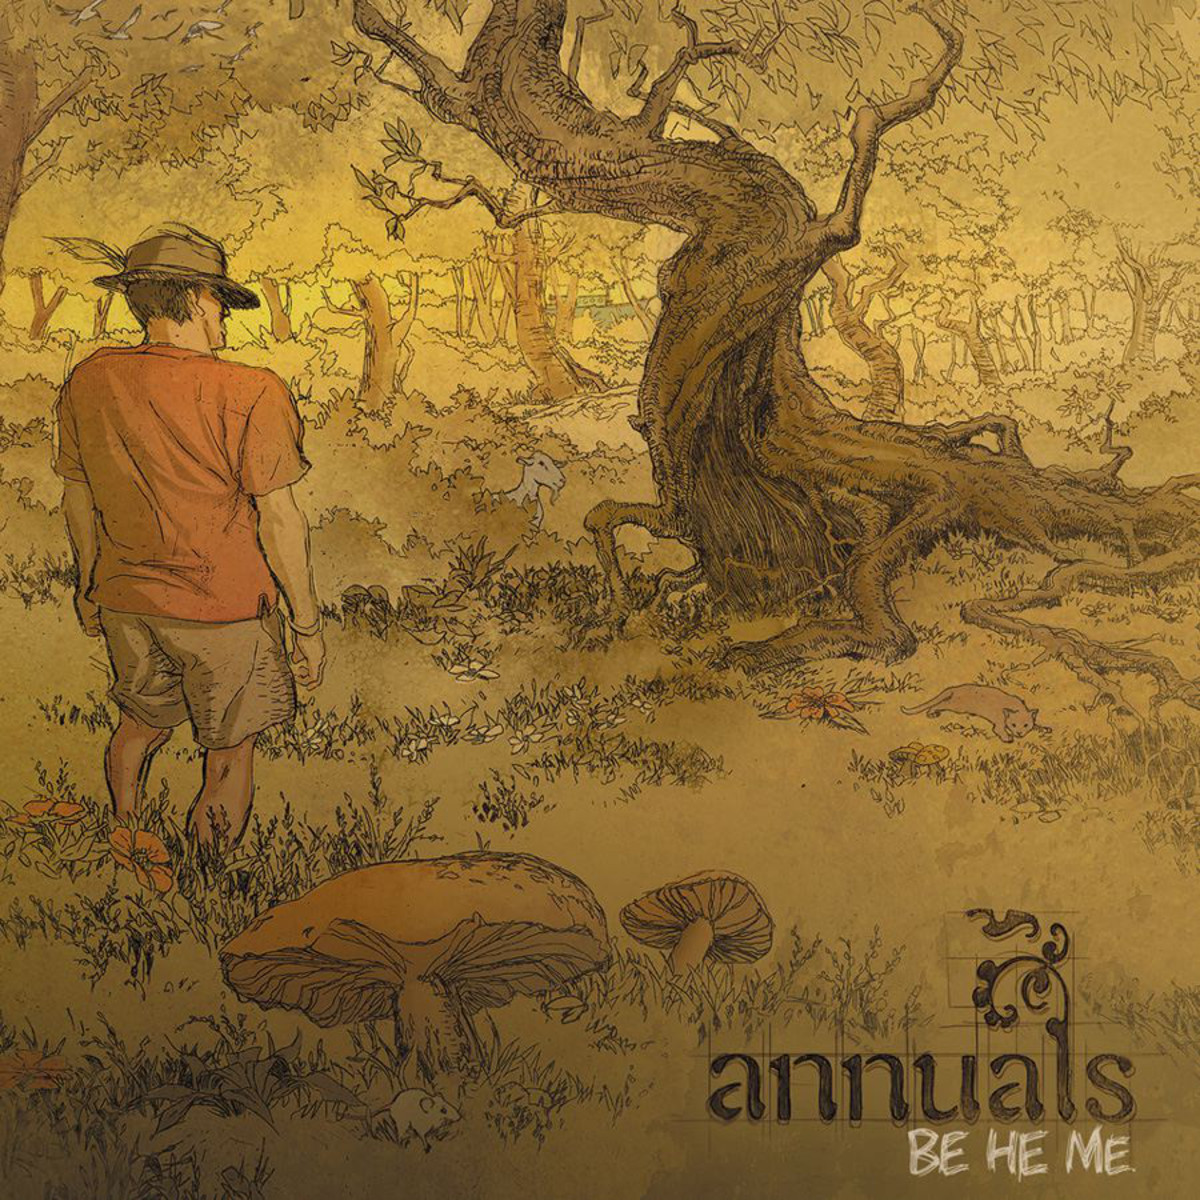 Annuals' Be He Me is out now.